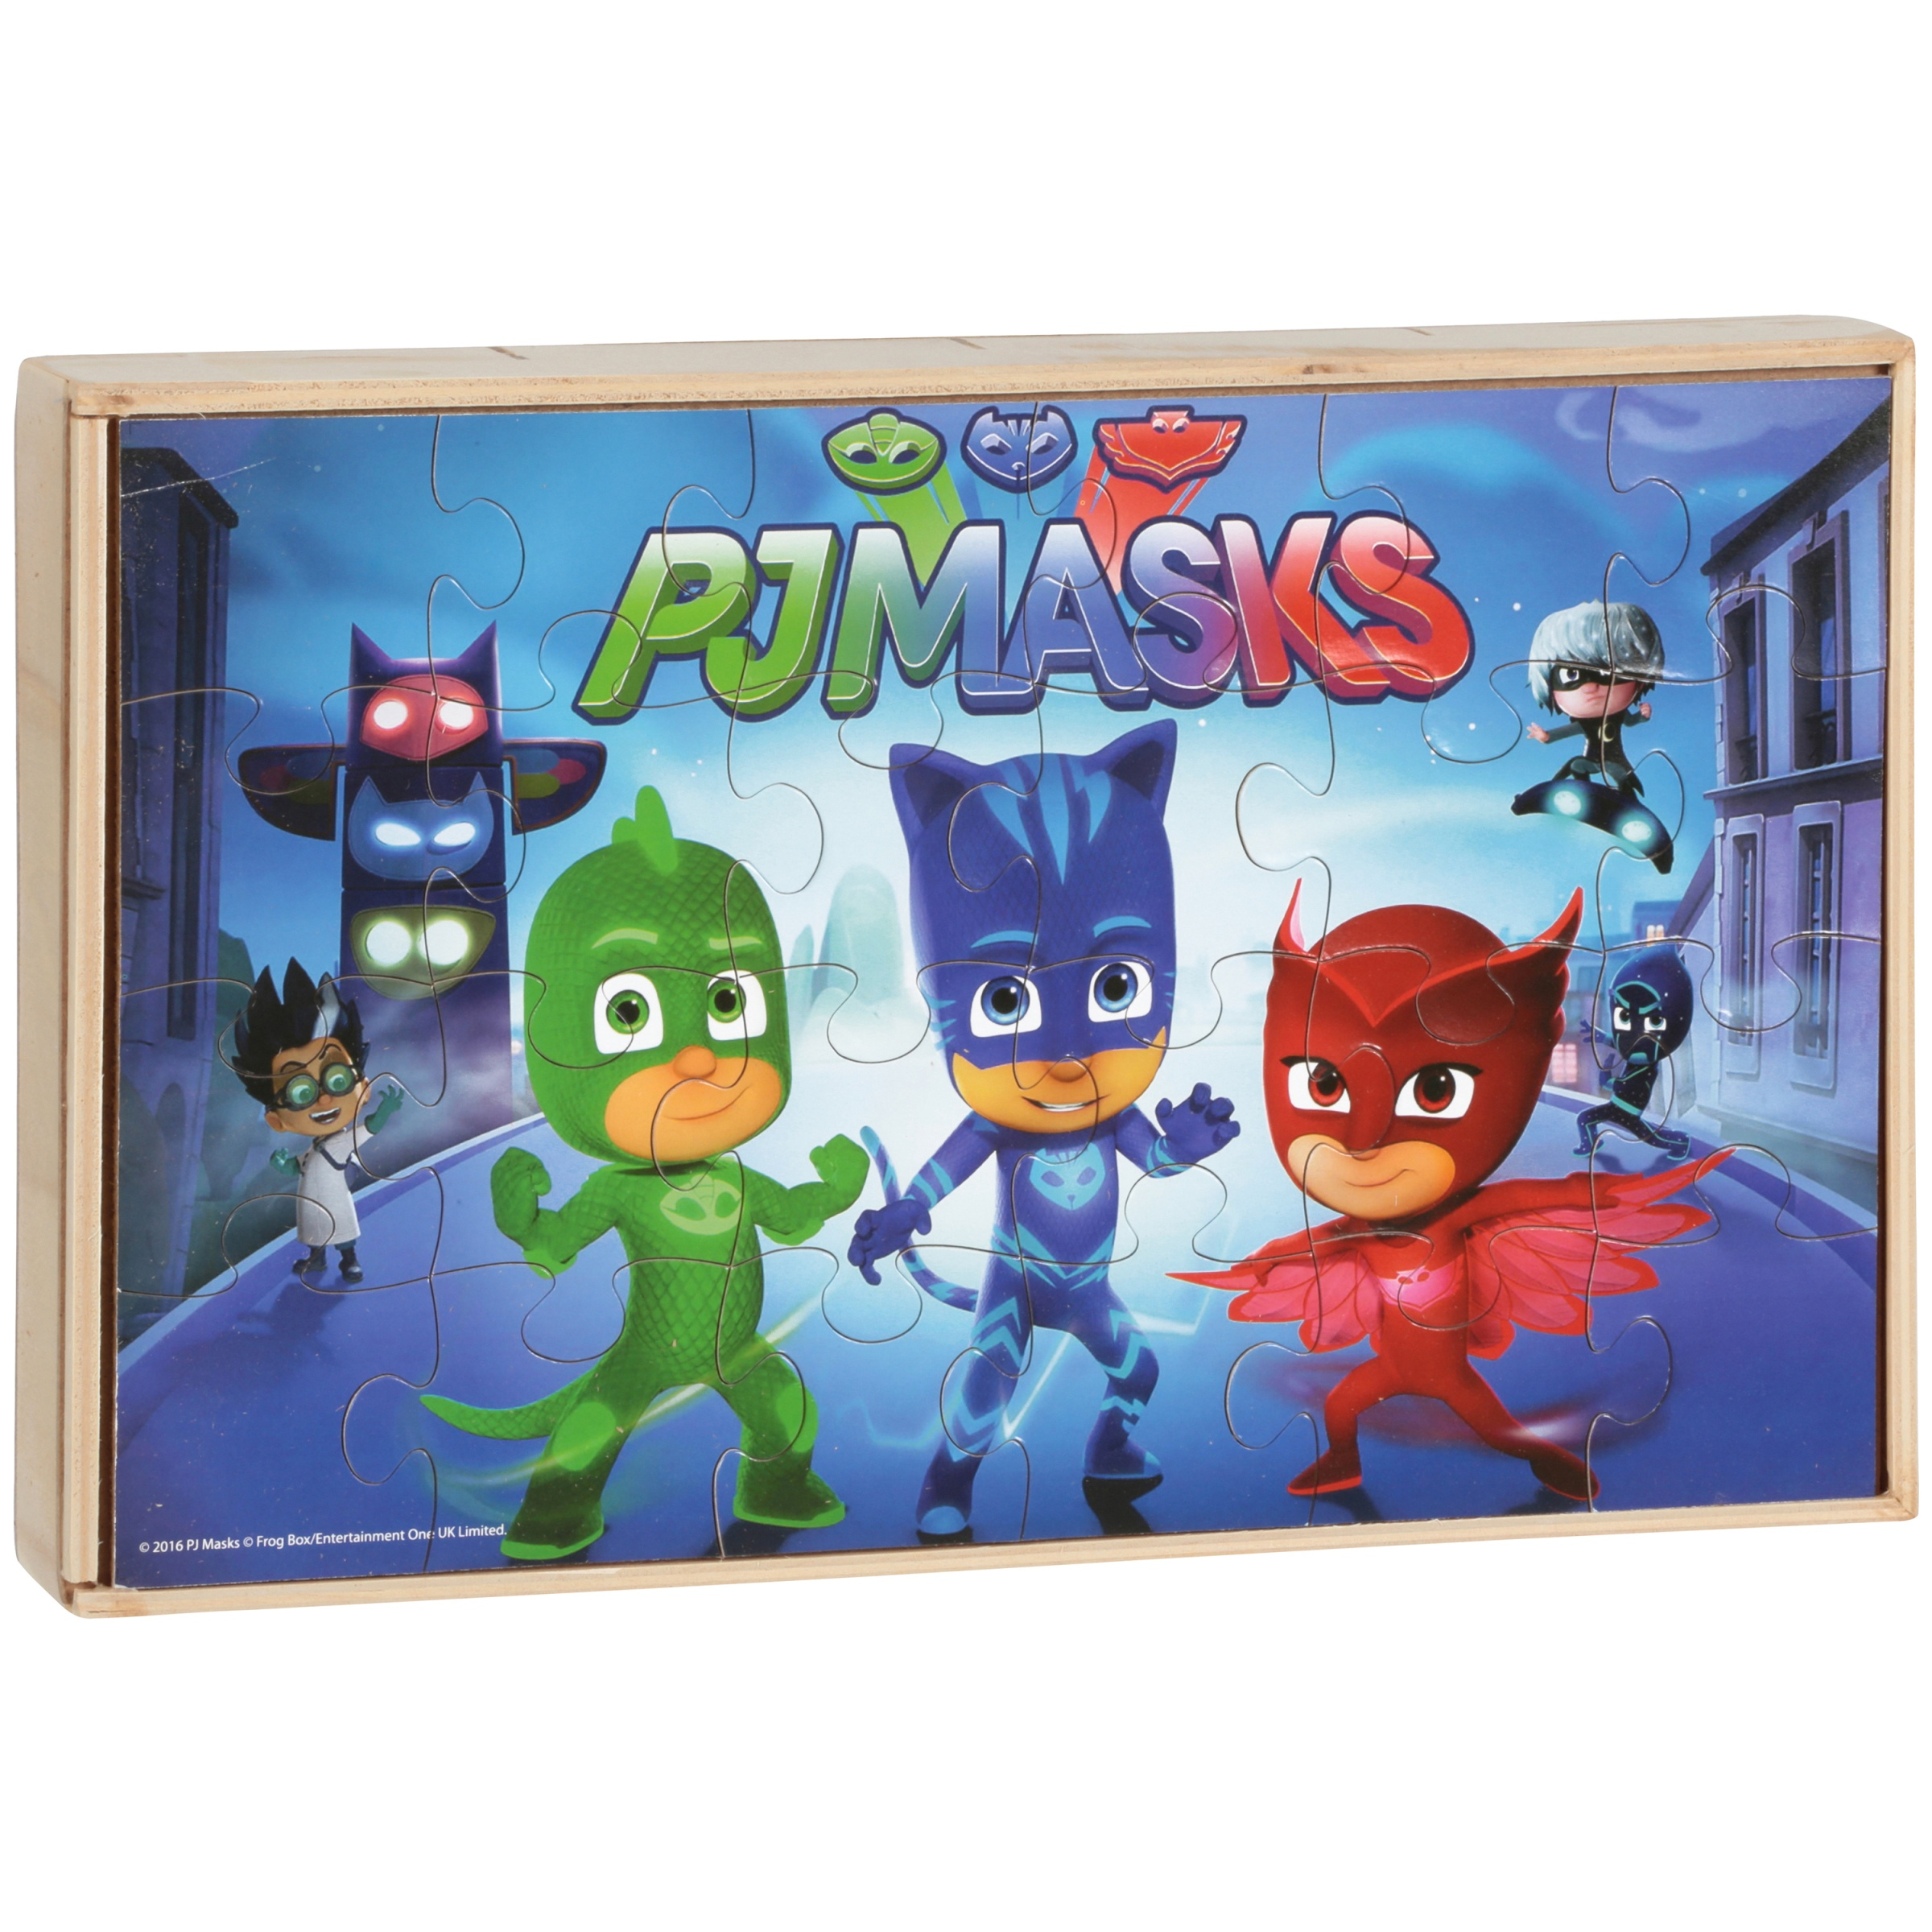 PJMasks Wooden Puzzles 7 ct Pack by Cardinal Industries Inc.